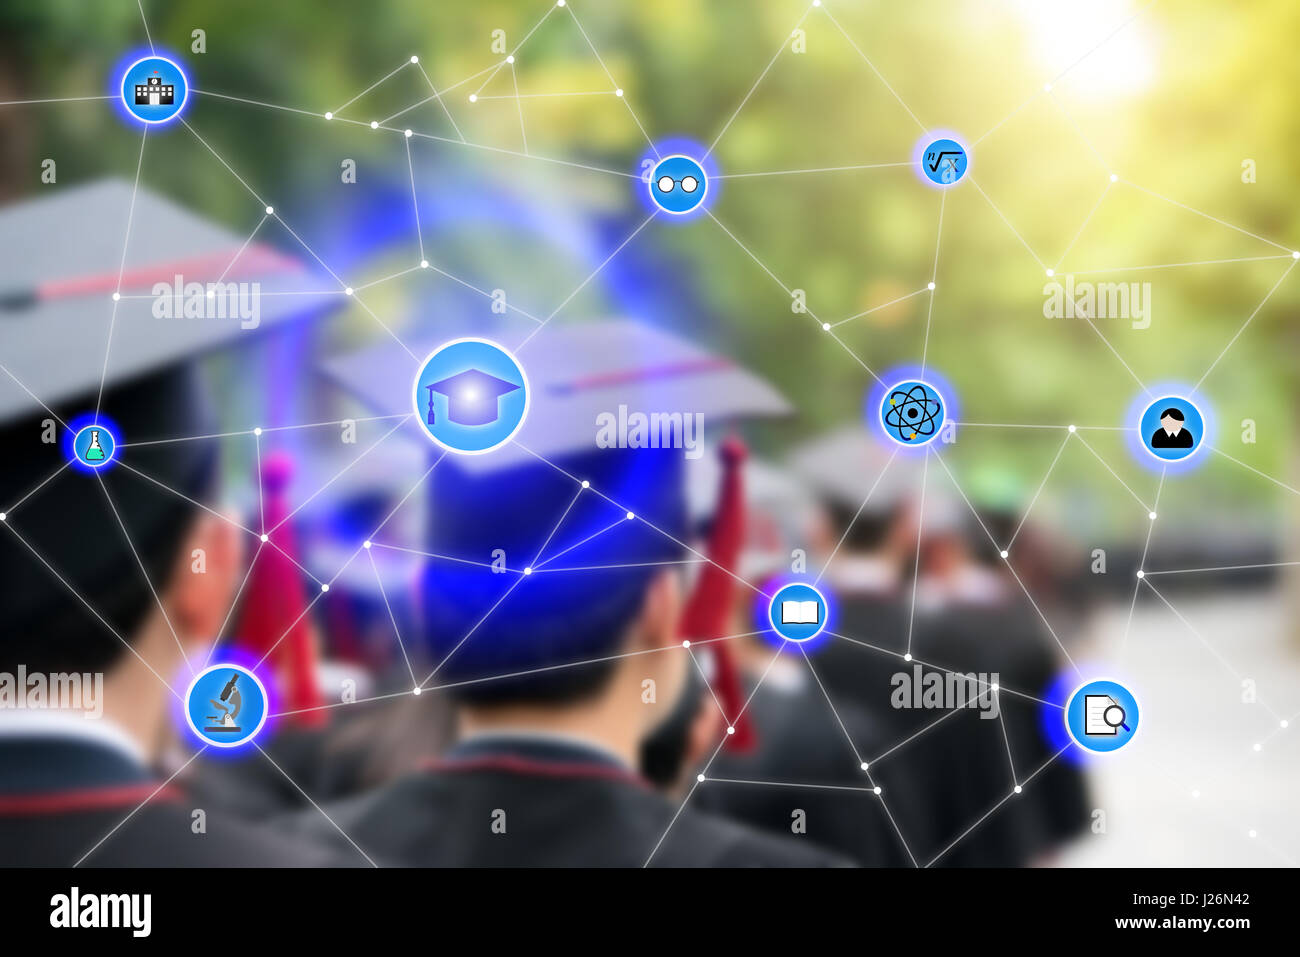 Smart education and education icon network conection with graduation in background, abstract image visual, internet - Stock Image